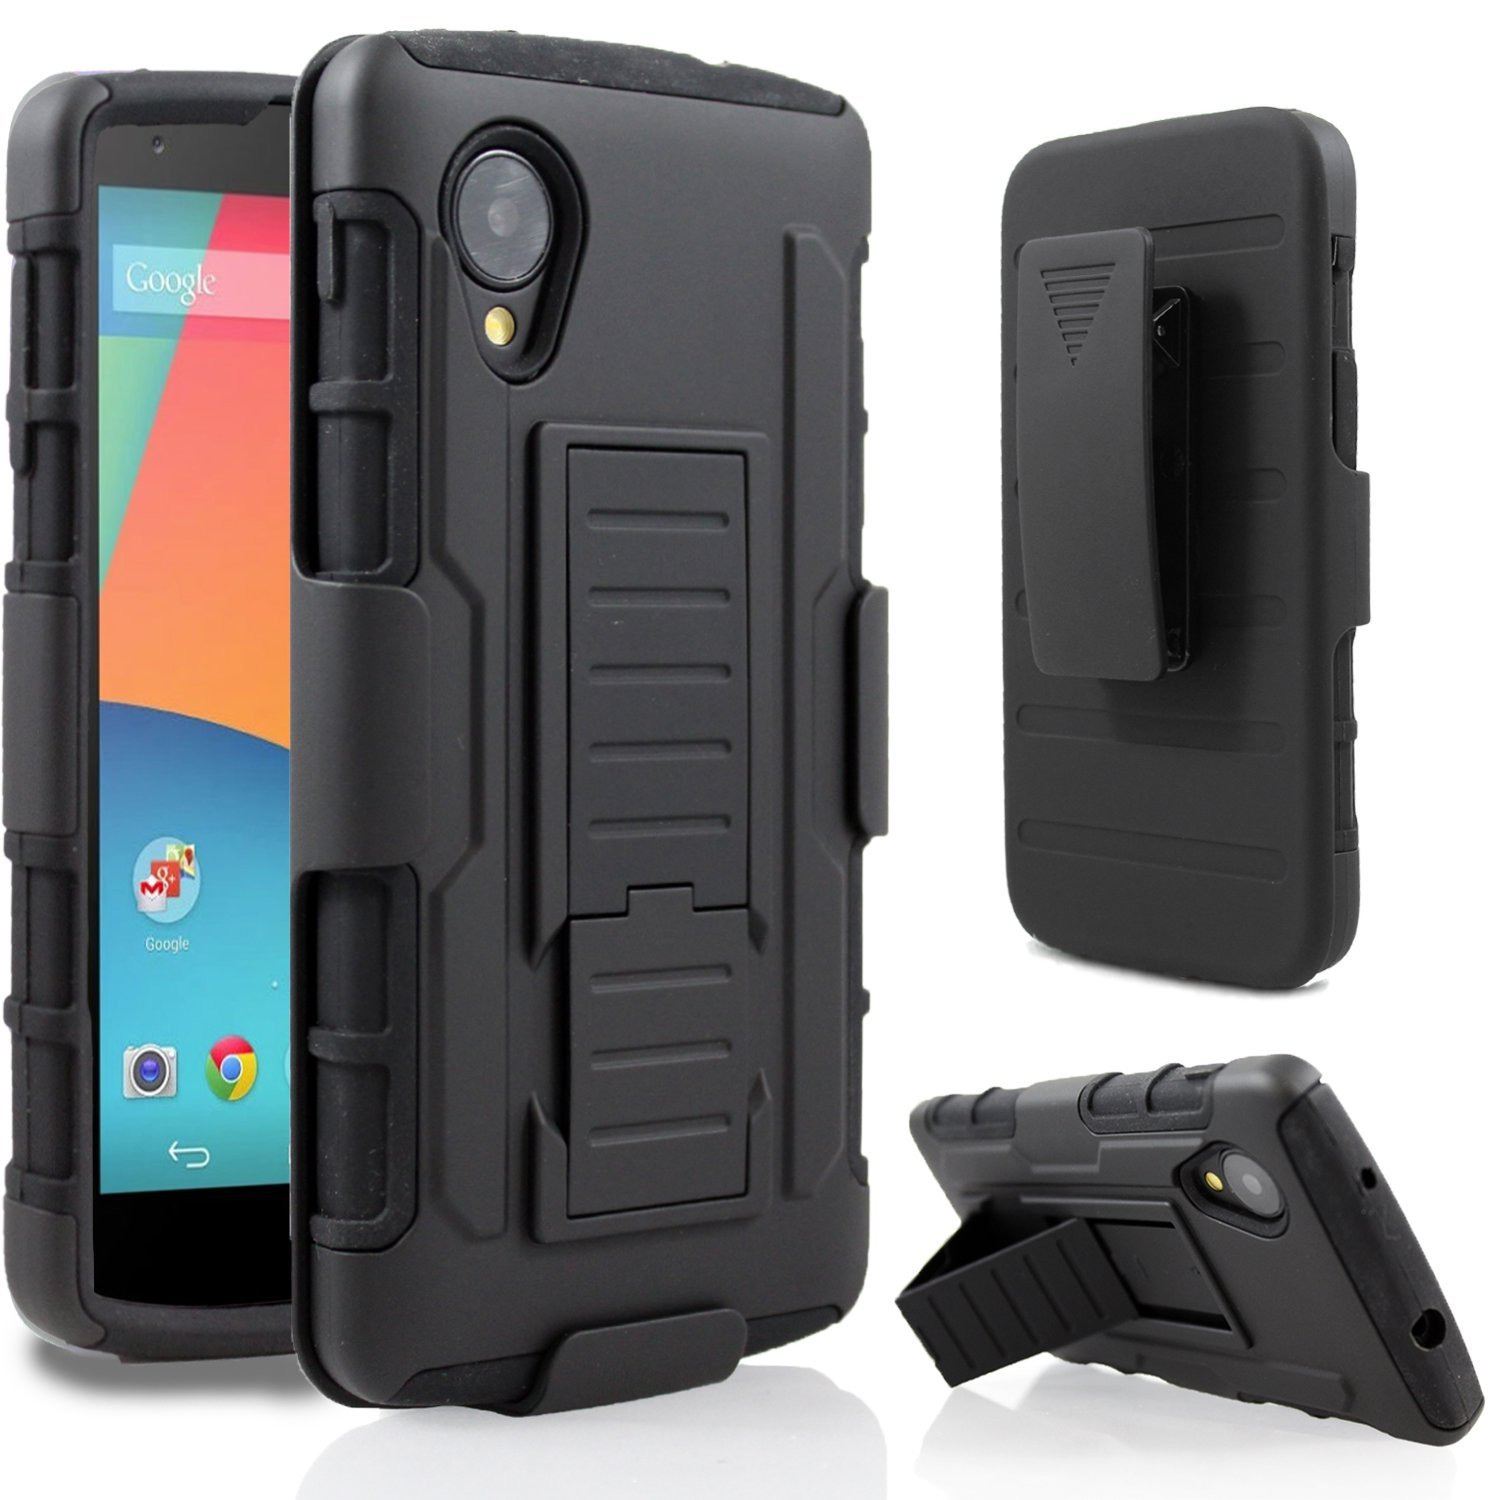 low priced 4e61d 5e1d5 Heavy Duty Case Cover Armor Impact Combo Holster Shockproof Hard ...